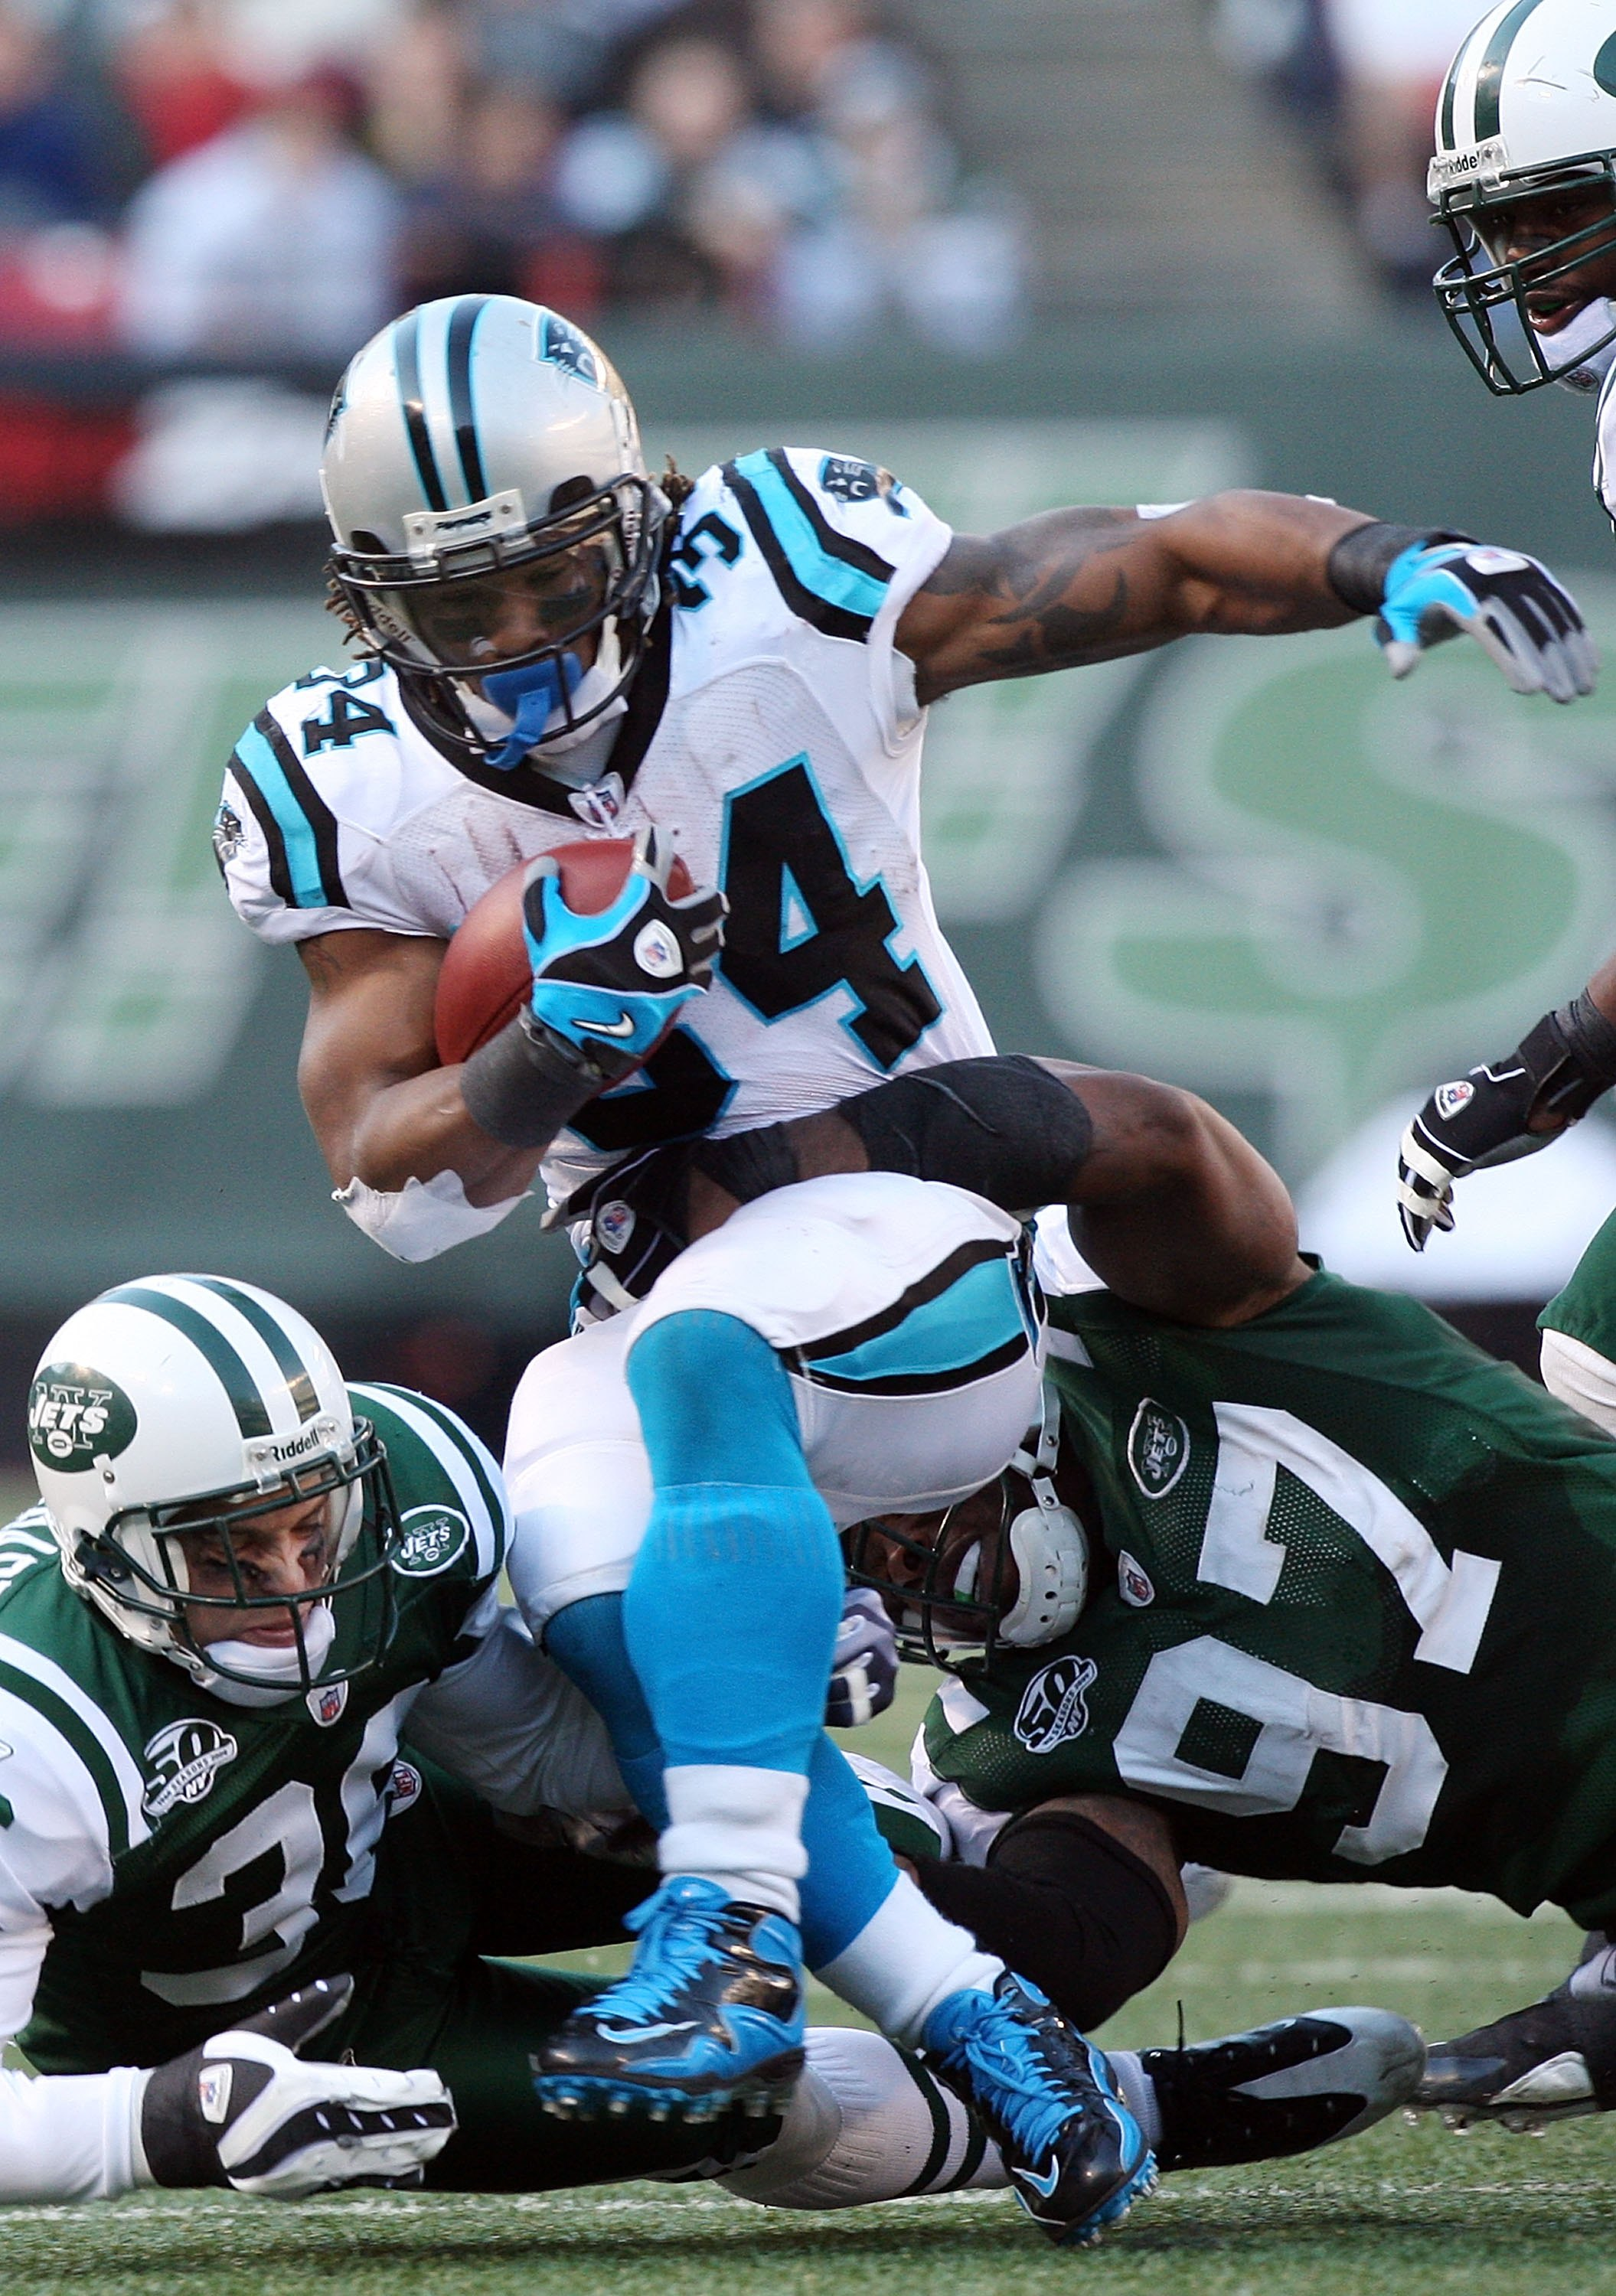 EAST RUTHERFORD, NJ - NOVEMBER 29: DeAngelo Williams #34 of the Carolina Panthers runs the ball against the New York Jetson November 29, 2009 at Giants Stadium in East Rutherford, New Jersey. The Jets defeated the Panthers 17-6.  (Photo by Jim McIsaac/Get